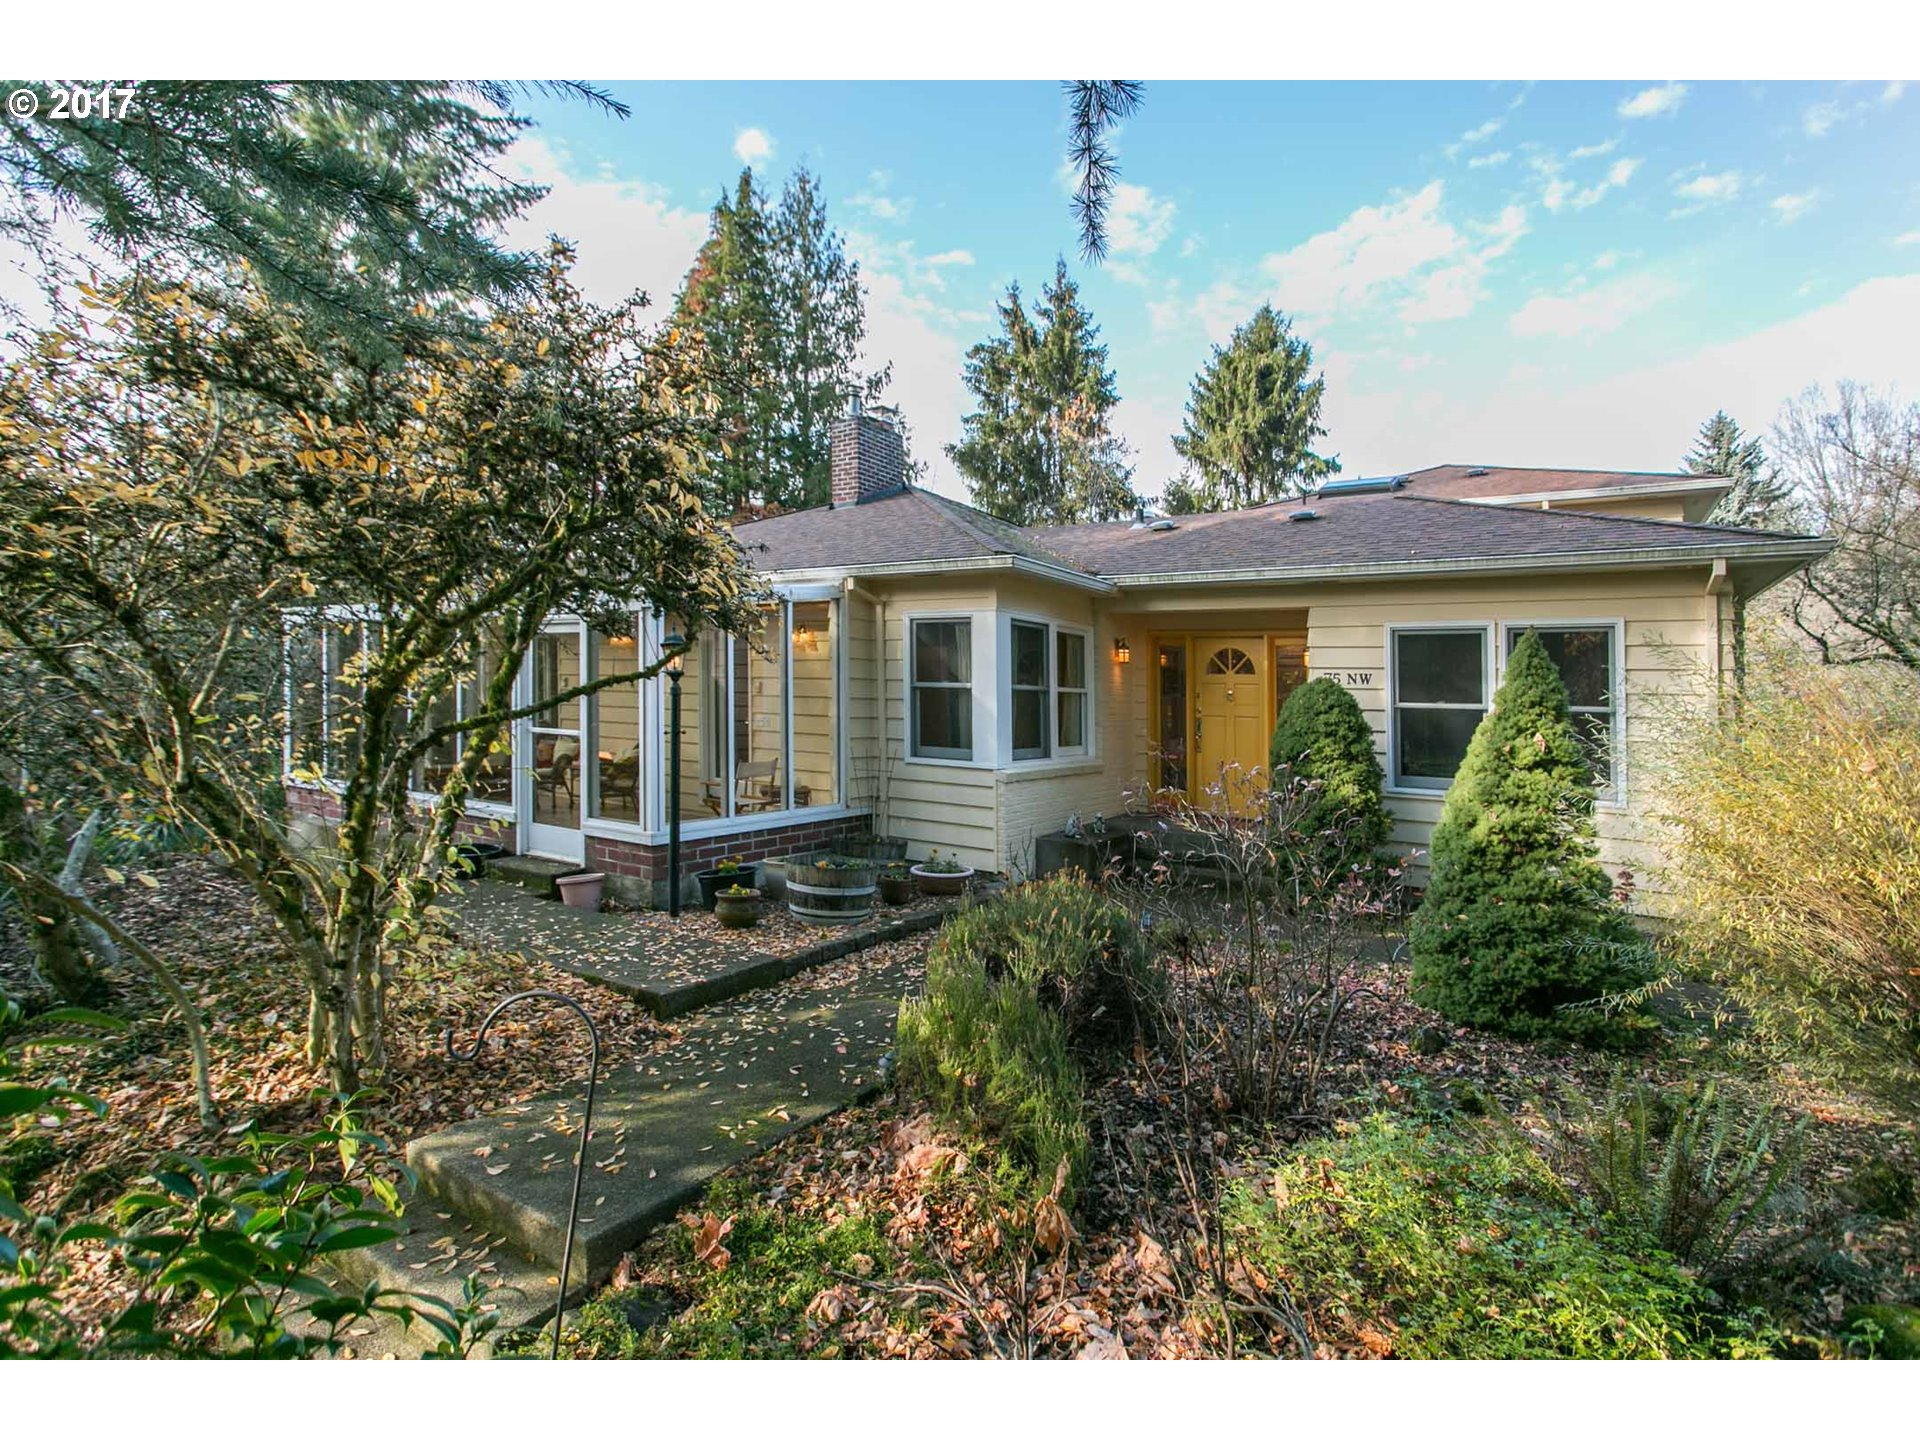 75 NW 90TH AVE, Portland OR 97229